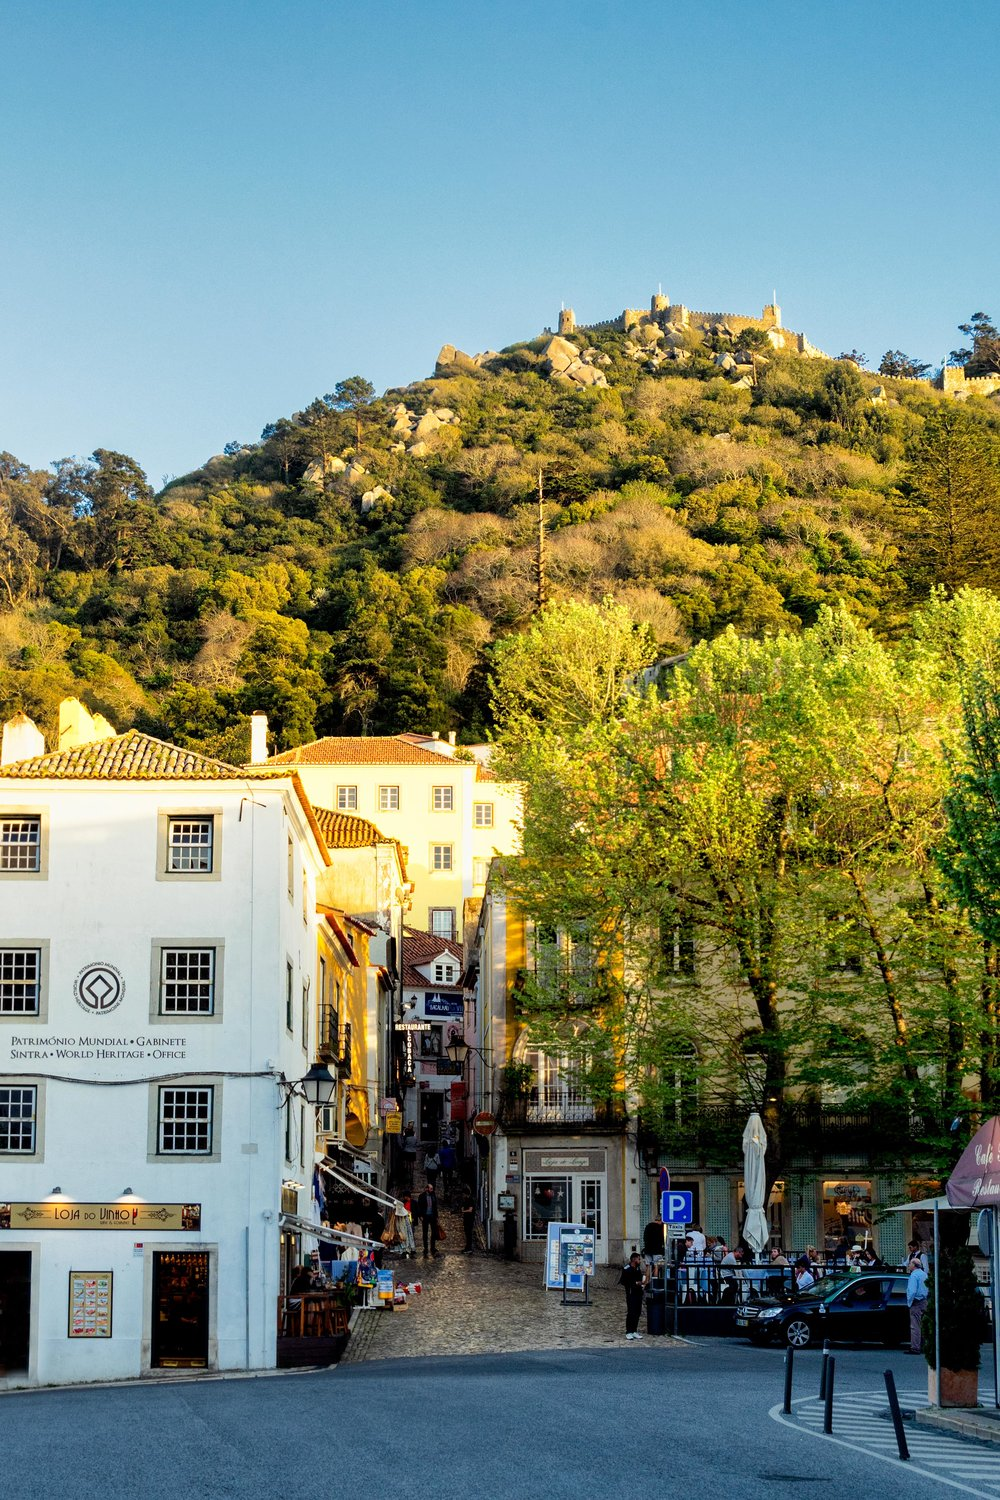 Portugal. Travel. Sintra. Sunshine. Hotel. History. view. room with a view. pena palace.  palace. town. old town. castle. castelo dos mouros. view of the town.jpg